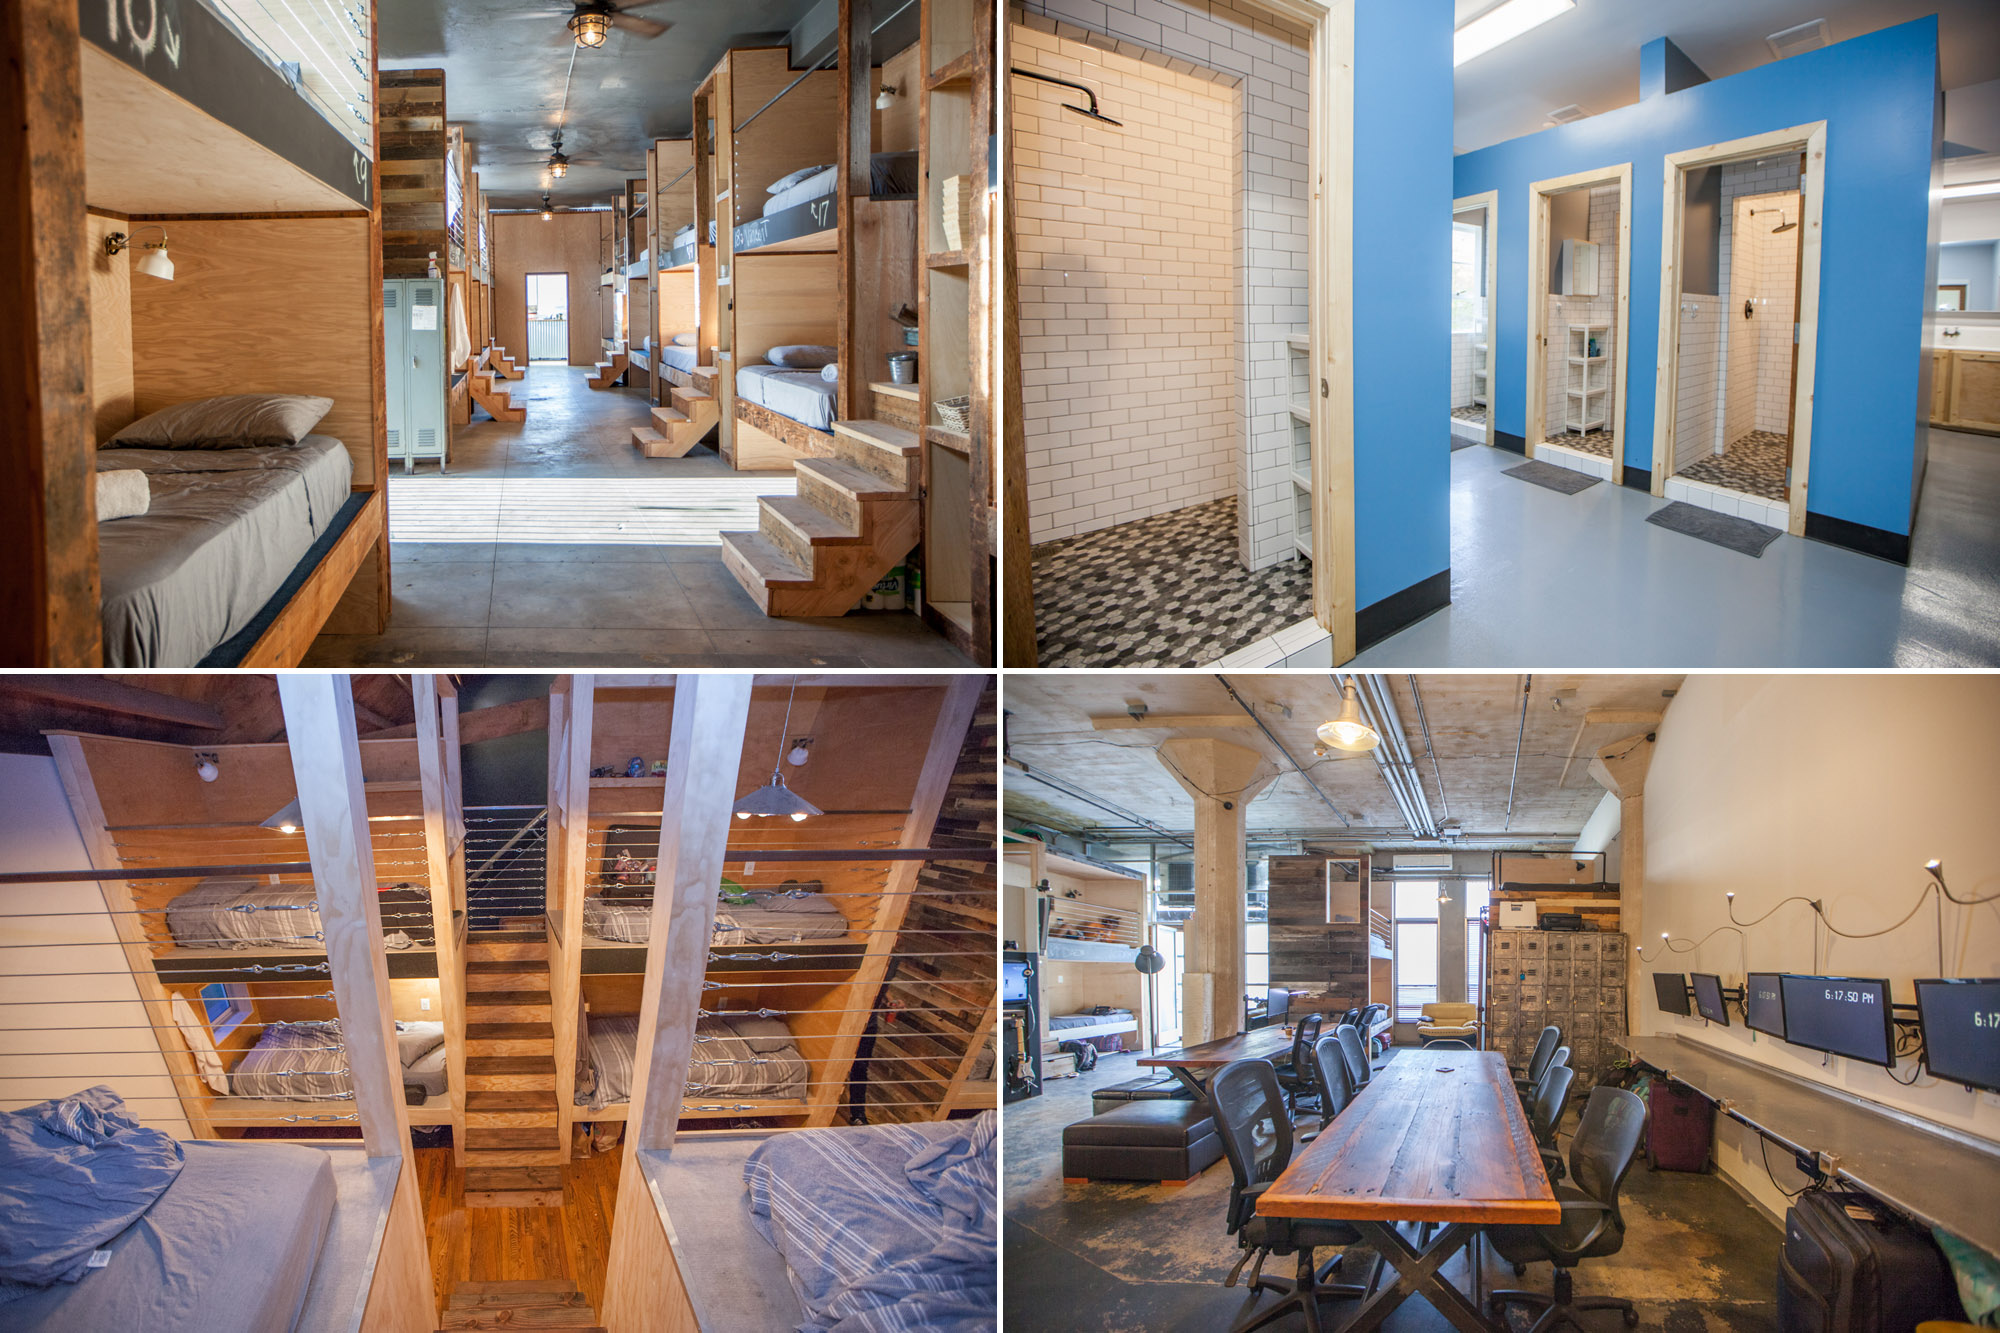 Bunk Beds Rent For 1 2k A Month Ramen And Toilet Paper Included